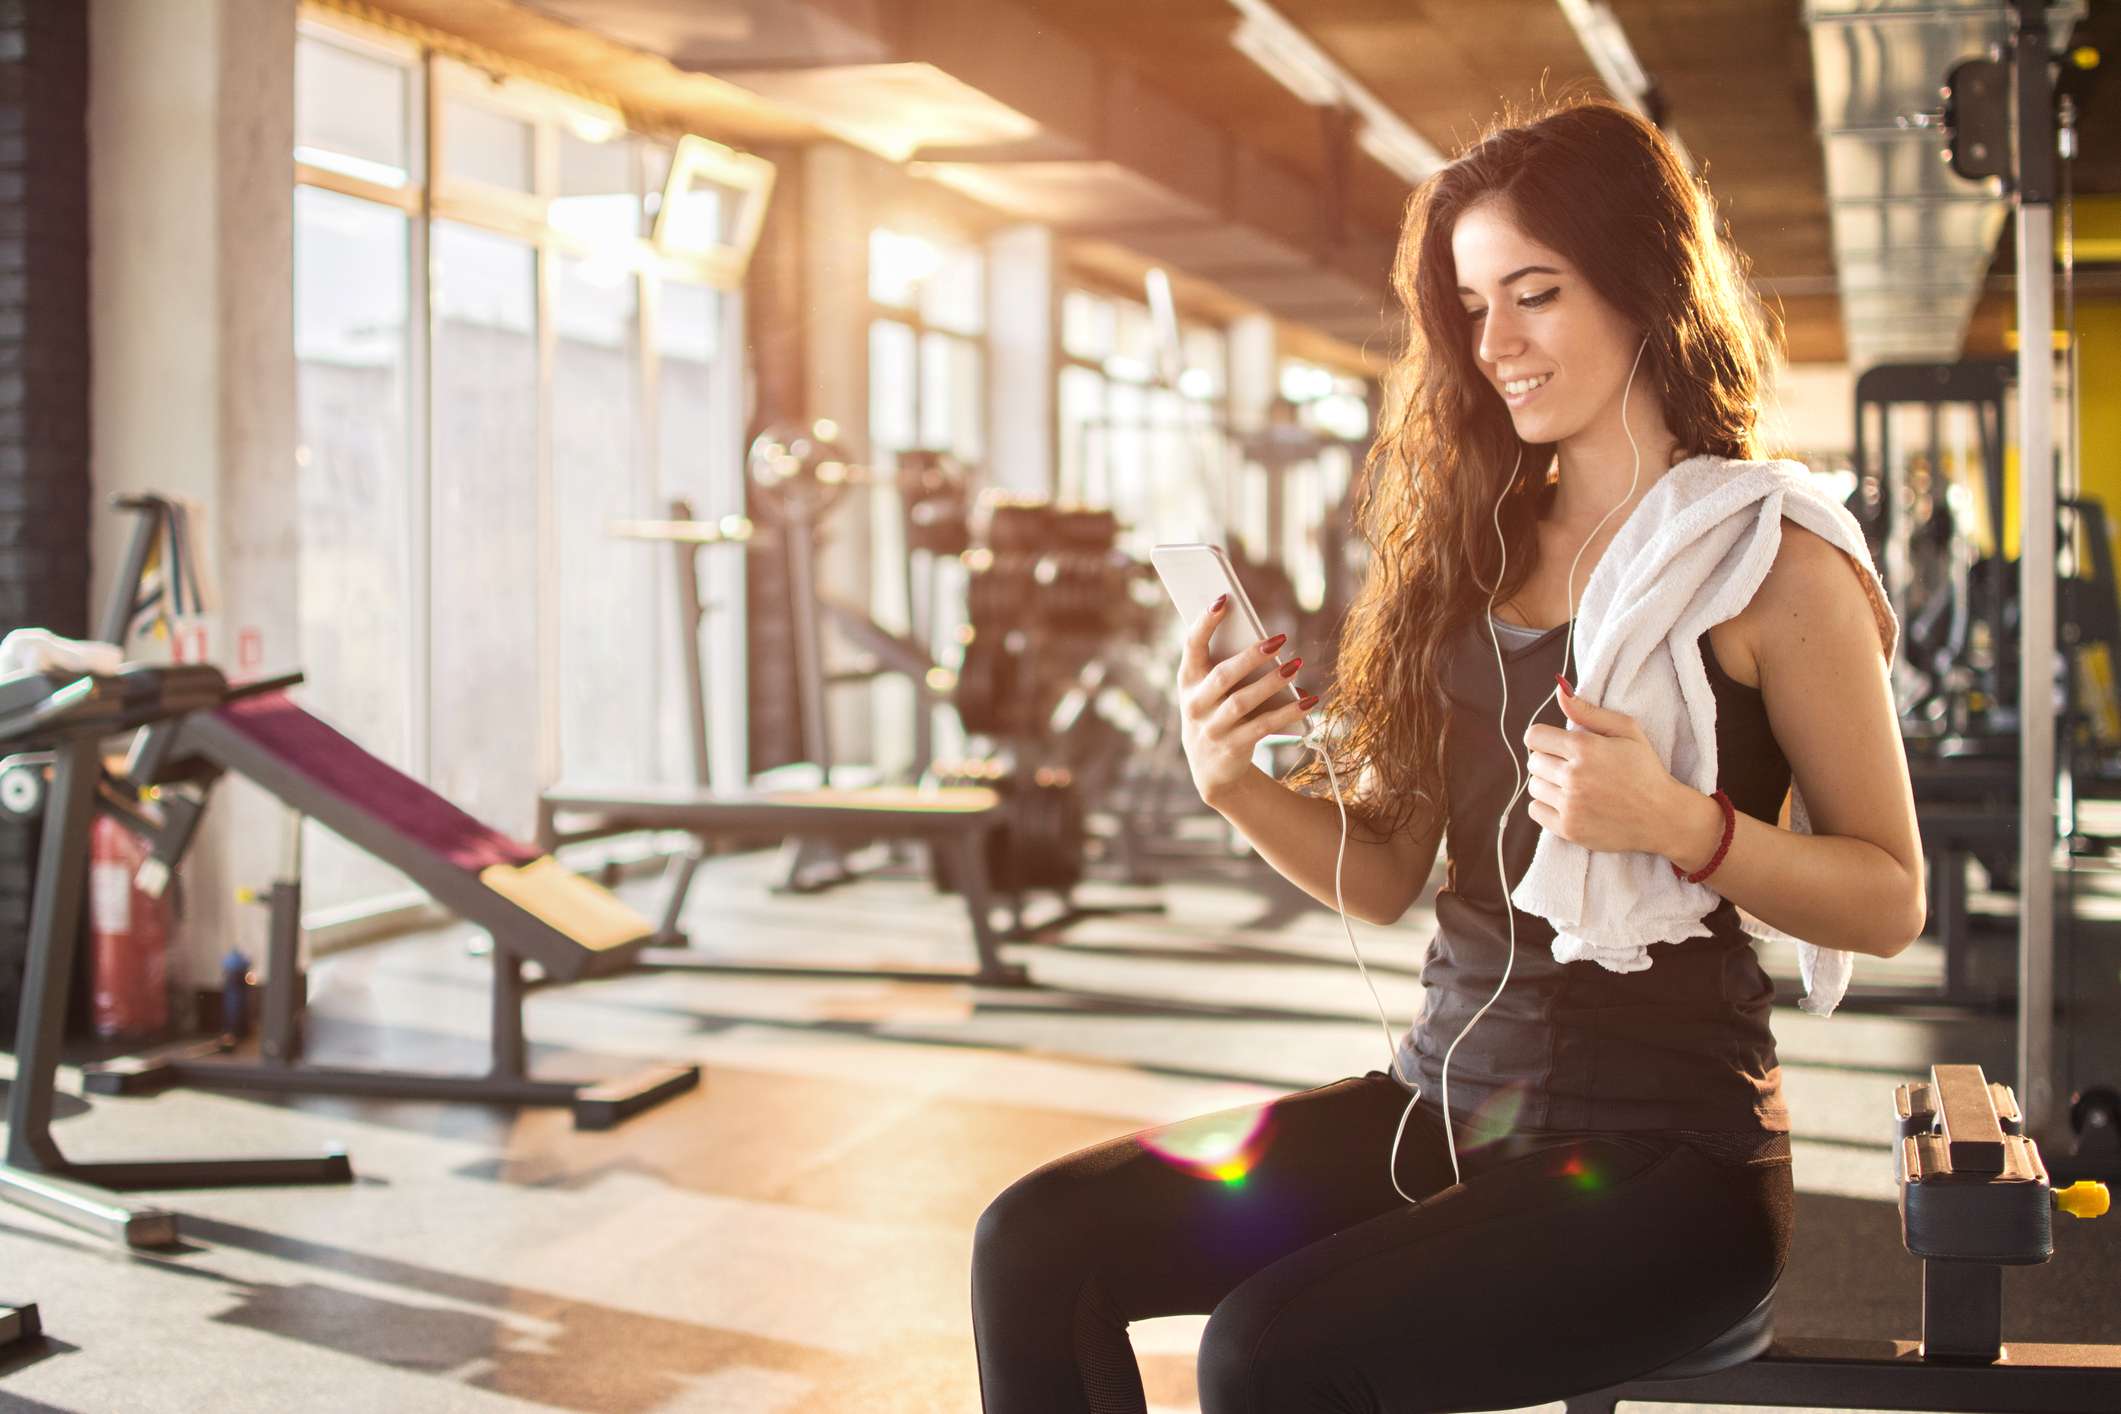 Generic photo of young woman in gym looking at her phone (Thinkstock/PA)